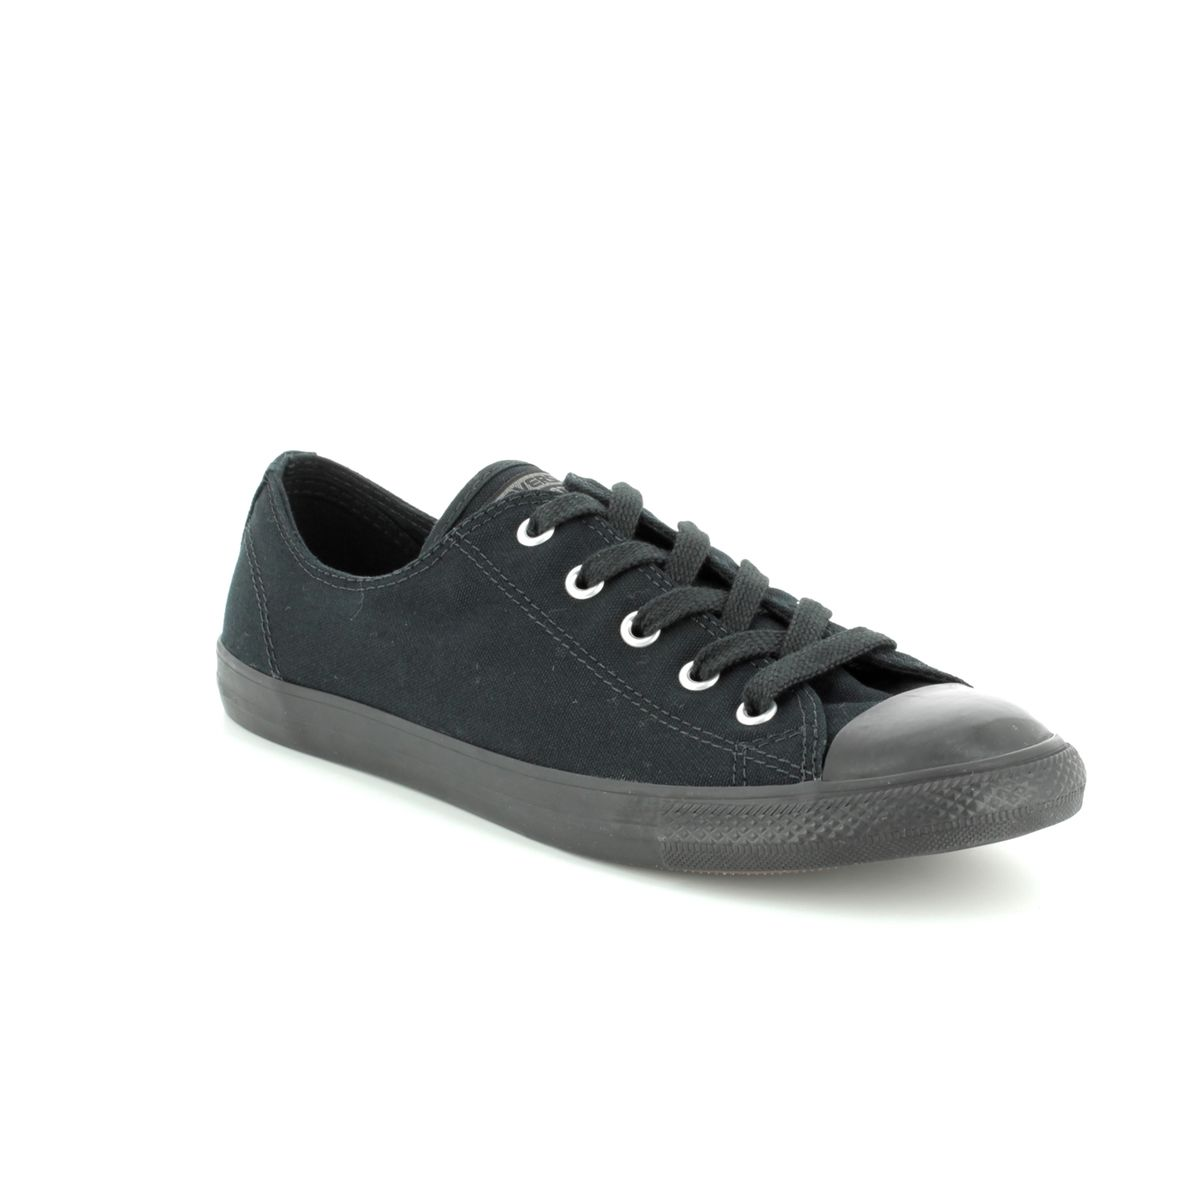 Converse Trainers - Black - 532354C ALL STAR DAINTY OX MONO ab9028215